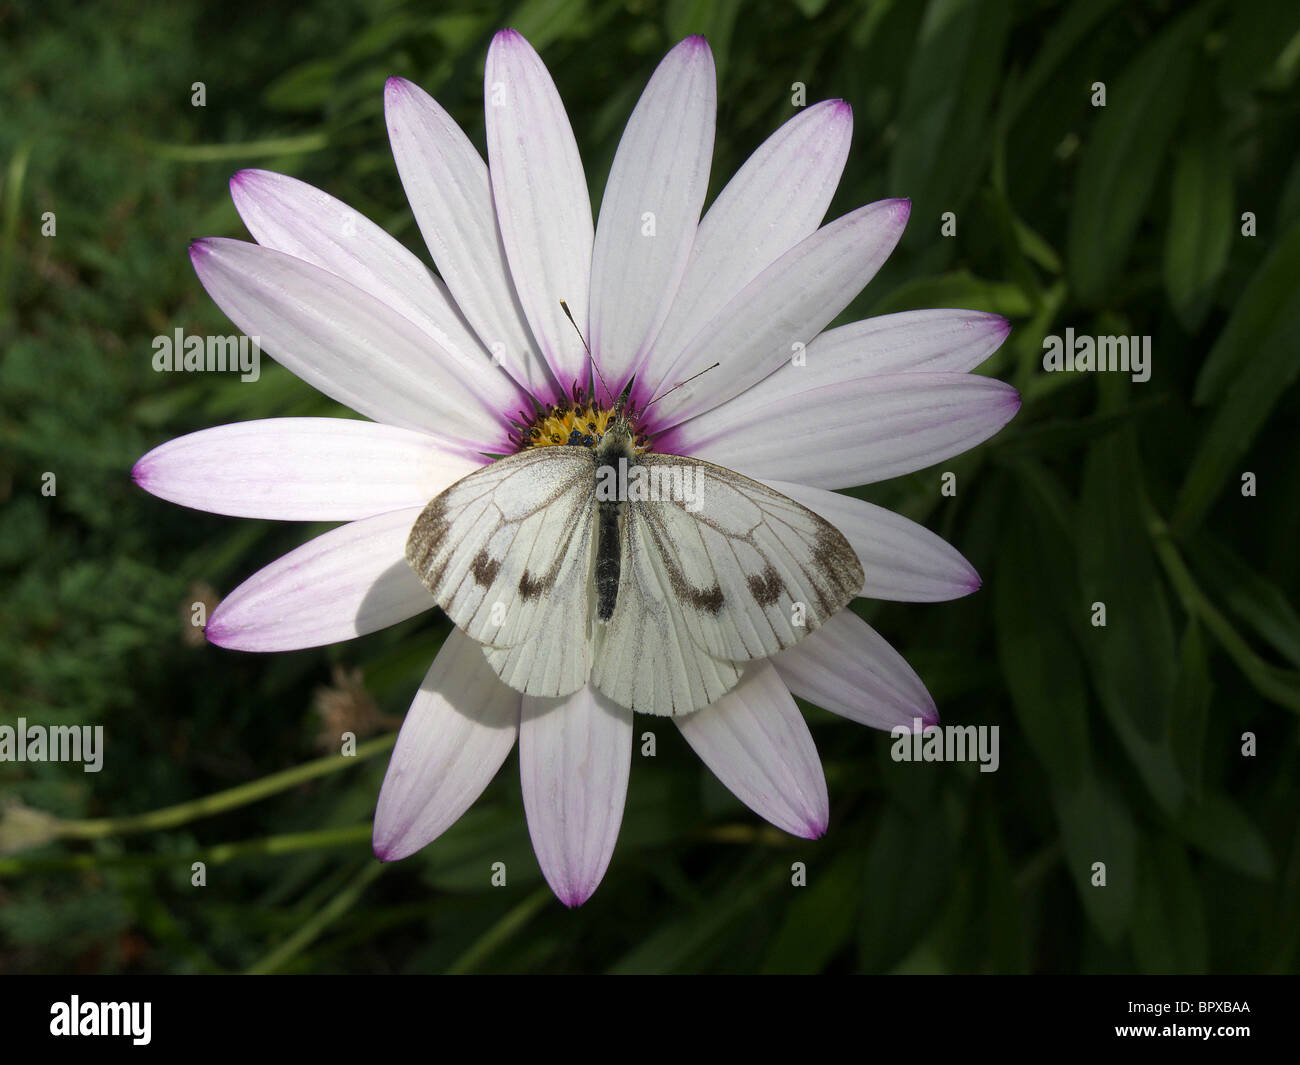 Large White Butterfly (Pieris brassicae) also known as the Cabbage White feeding on an Osteospermum Flower - Stock Image